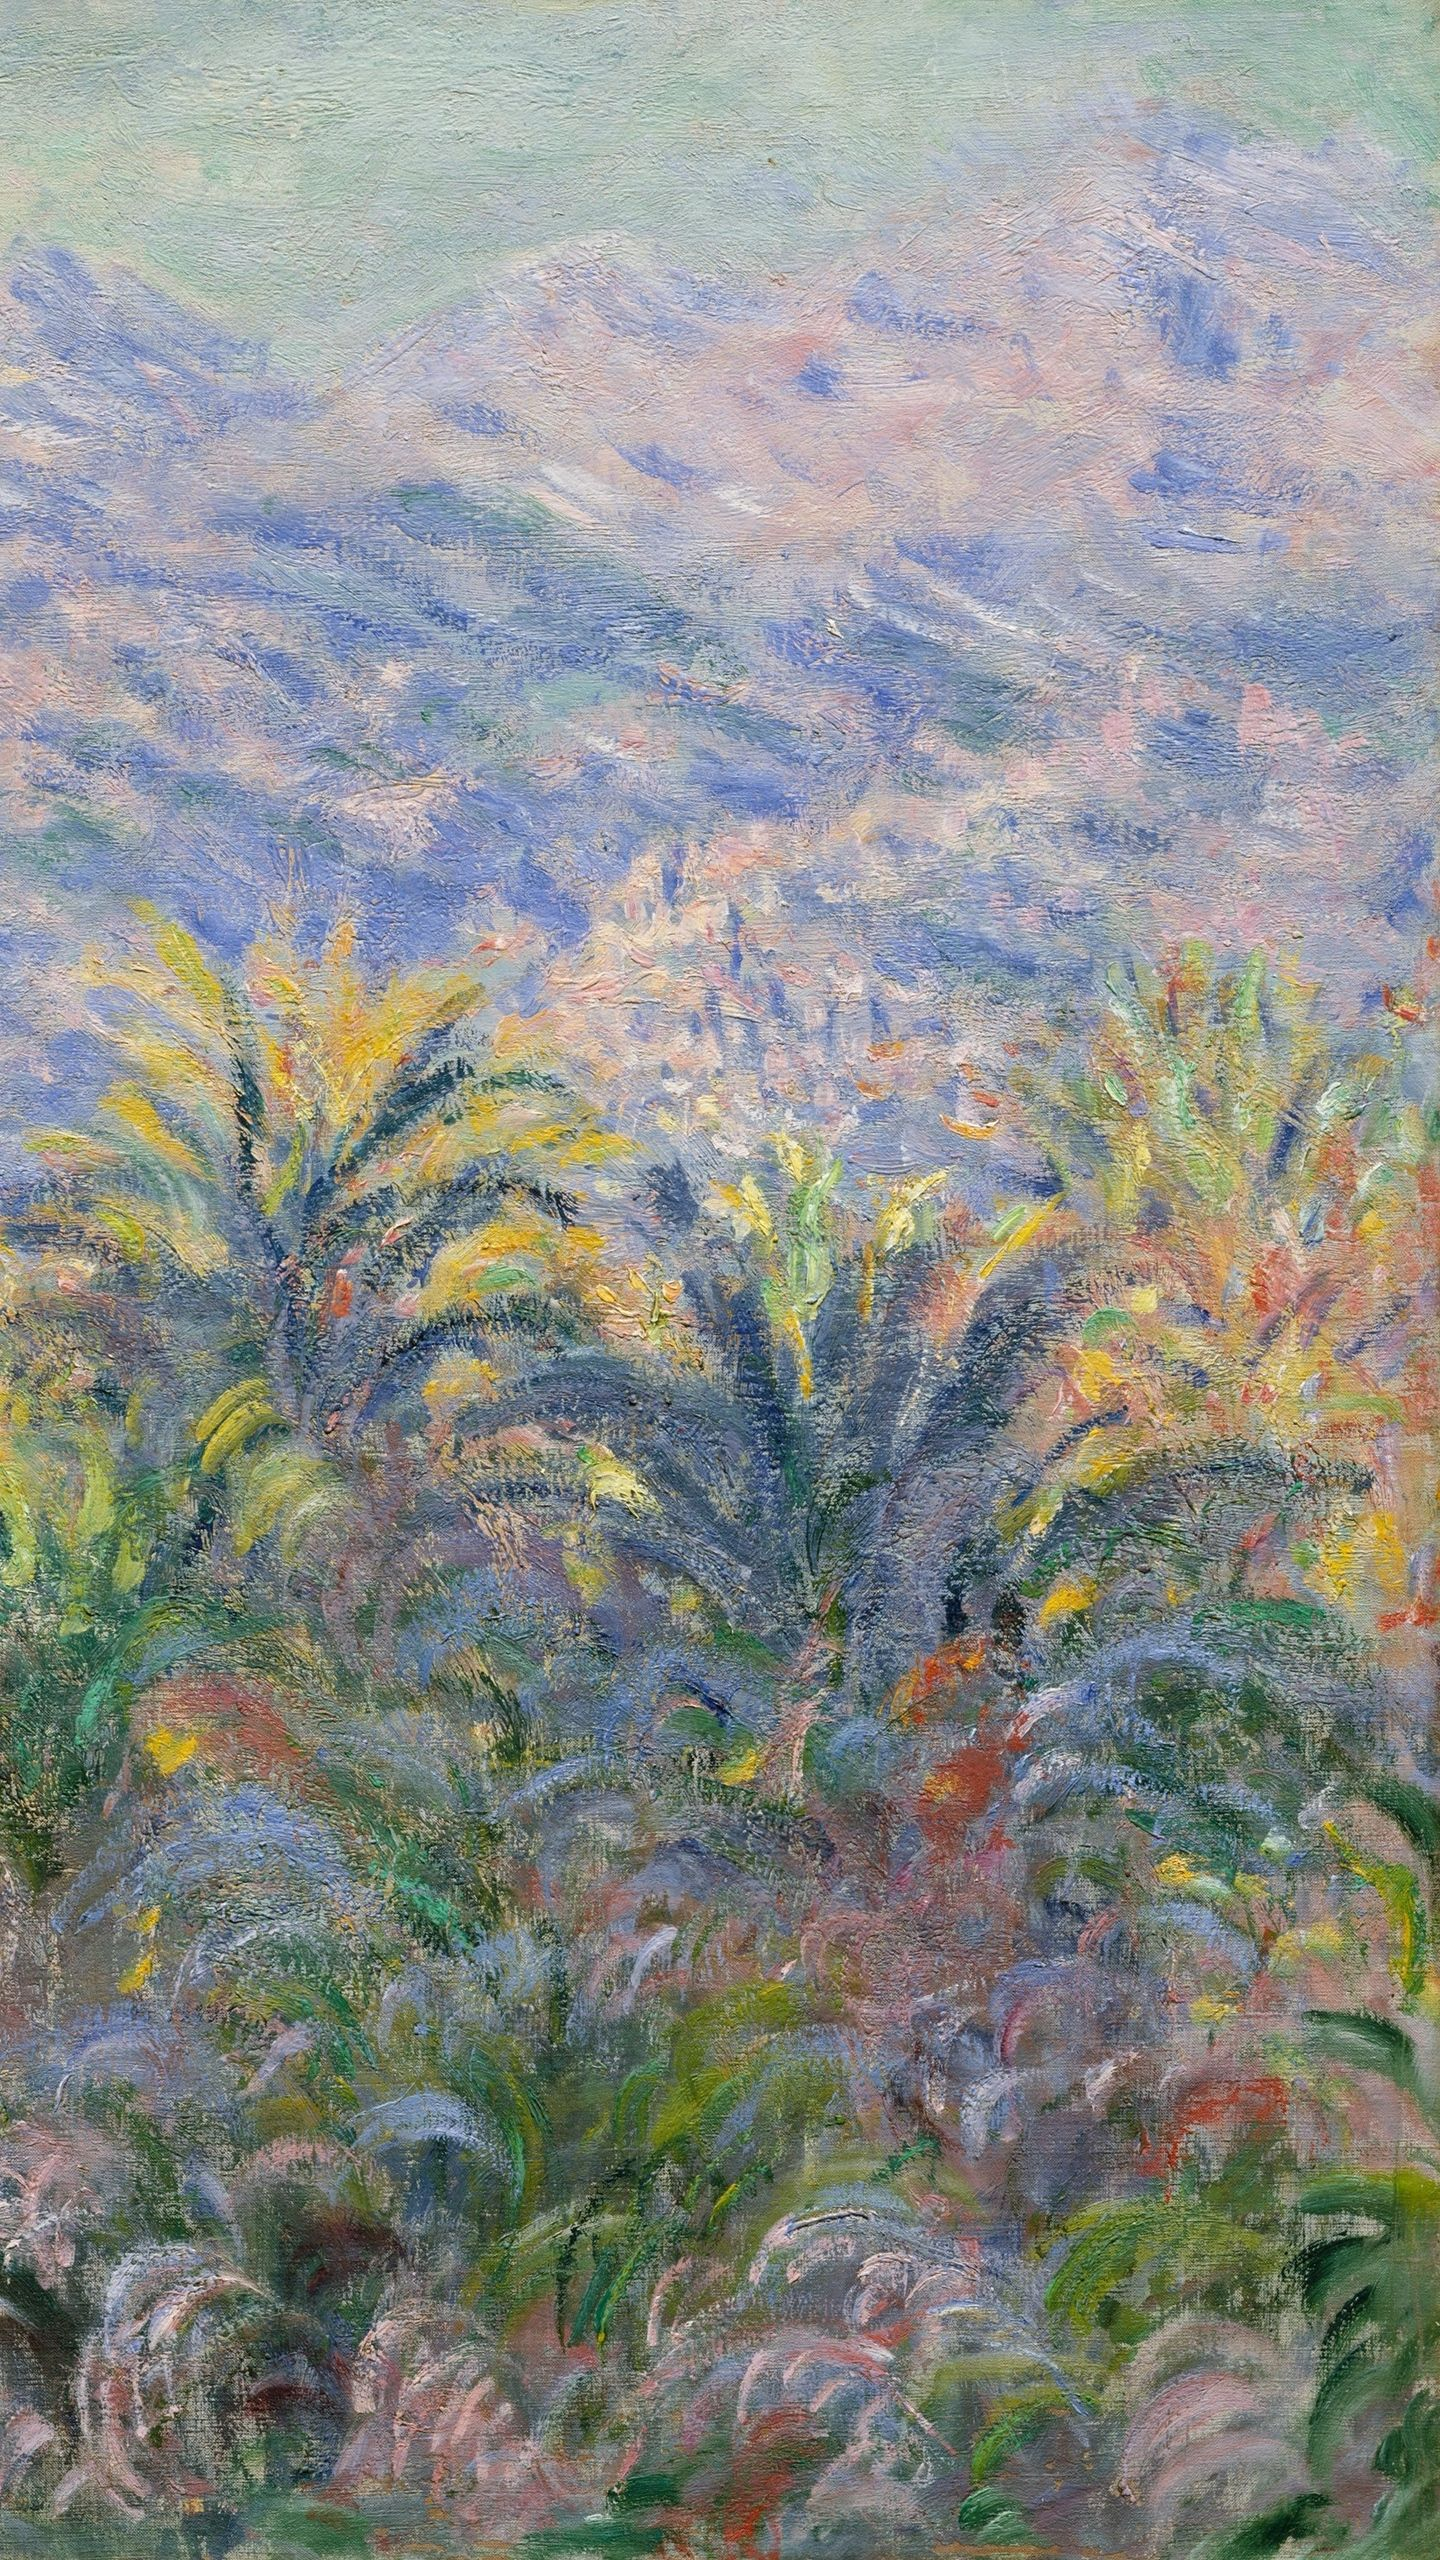 1440x2560 Download wallpaper 1440x2560 claude monet, palm trees at ...